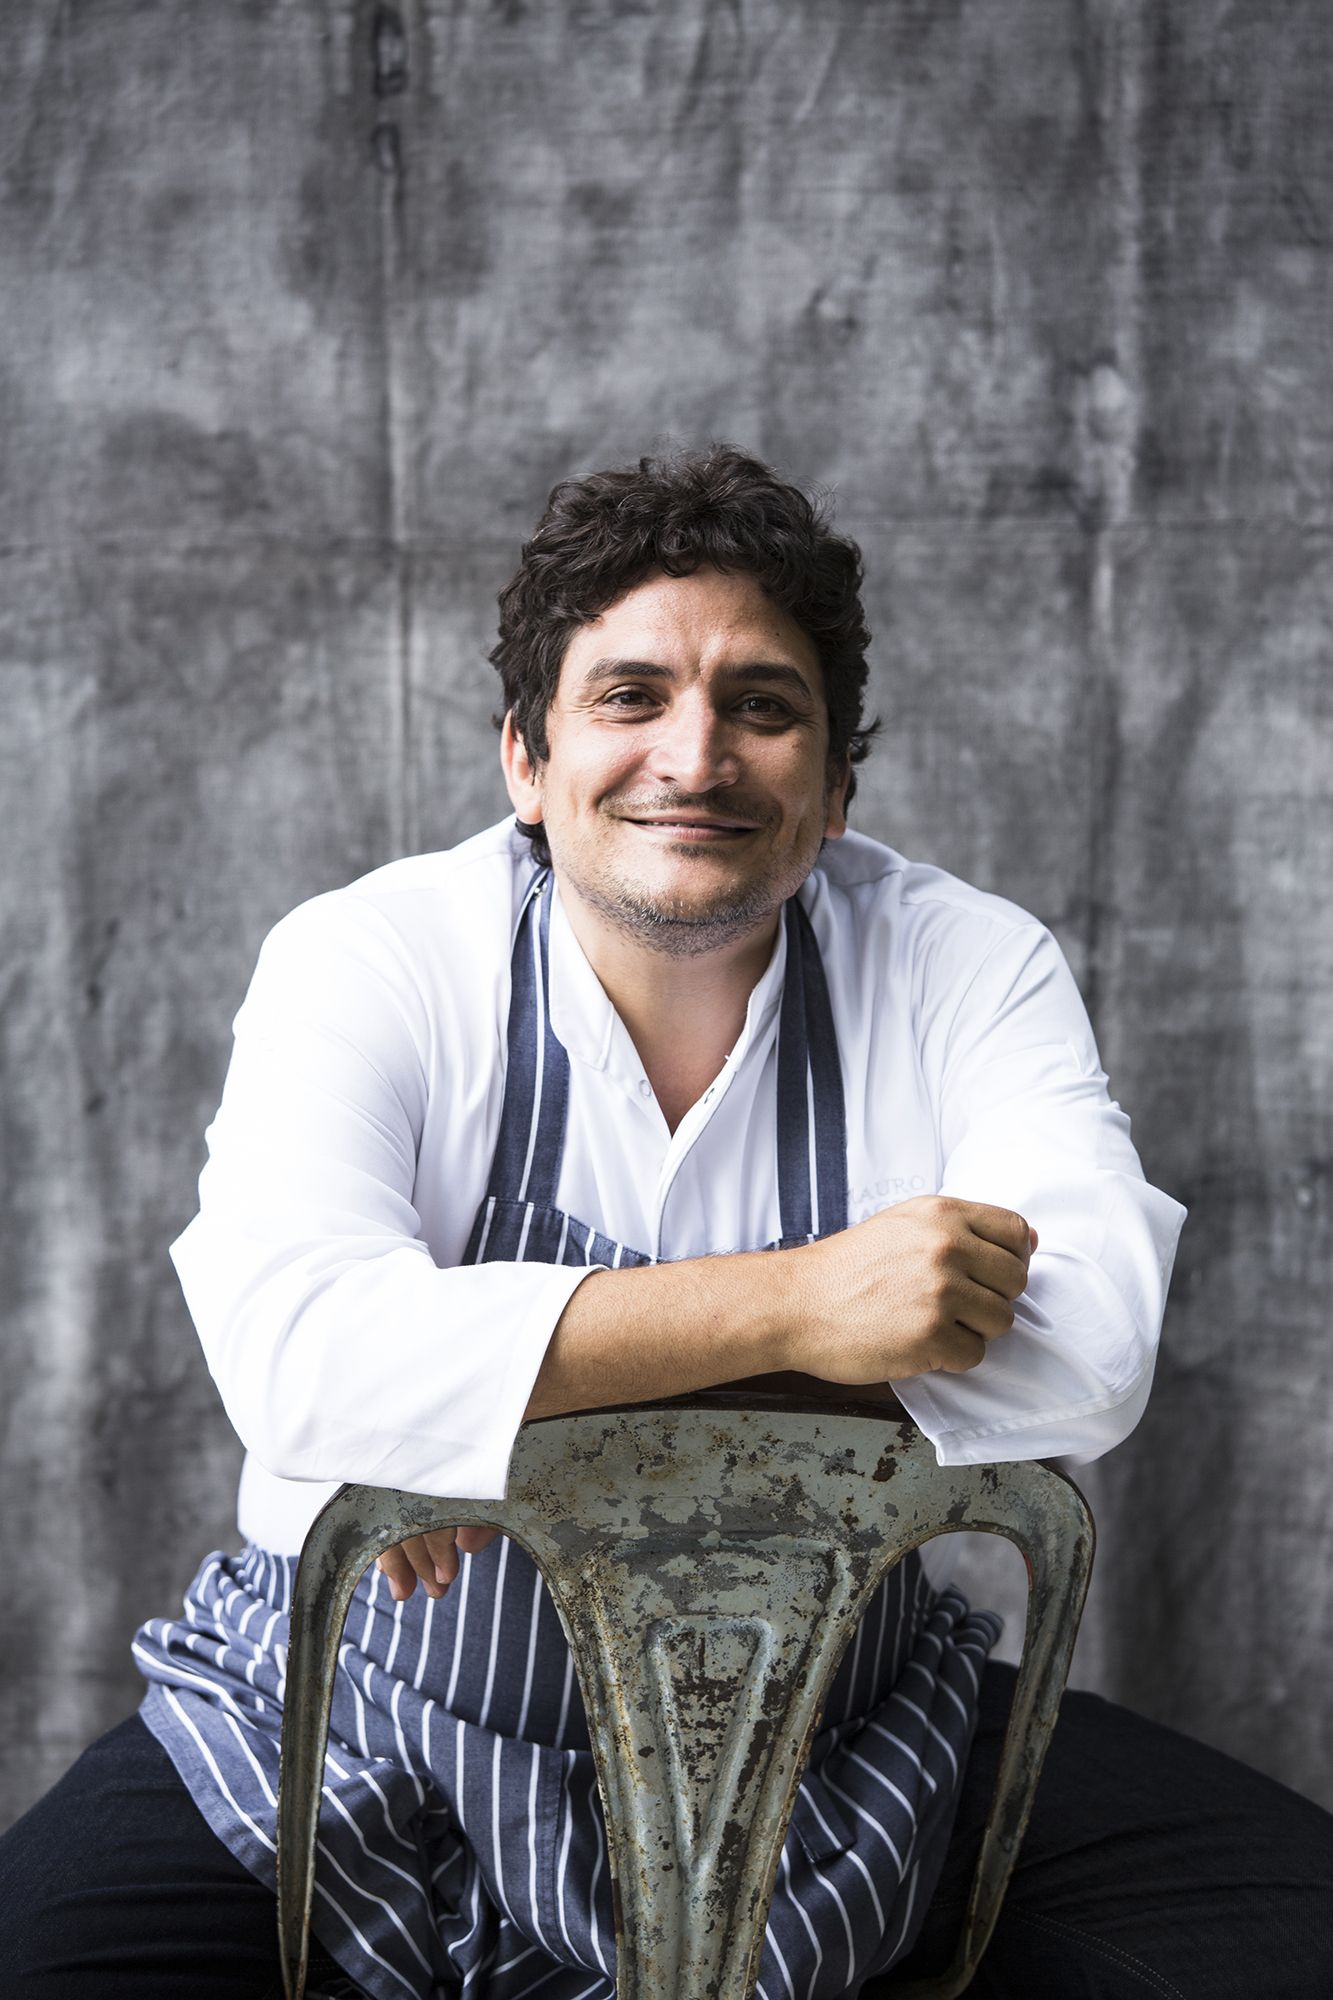 A Moment With Chef Mauro Colagreco Of Mirazur, The World's Best Restaurant